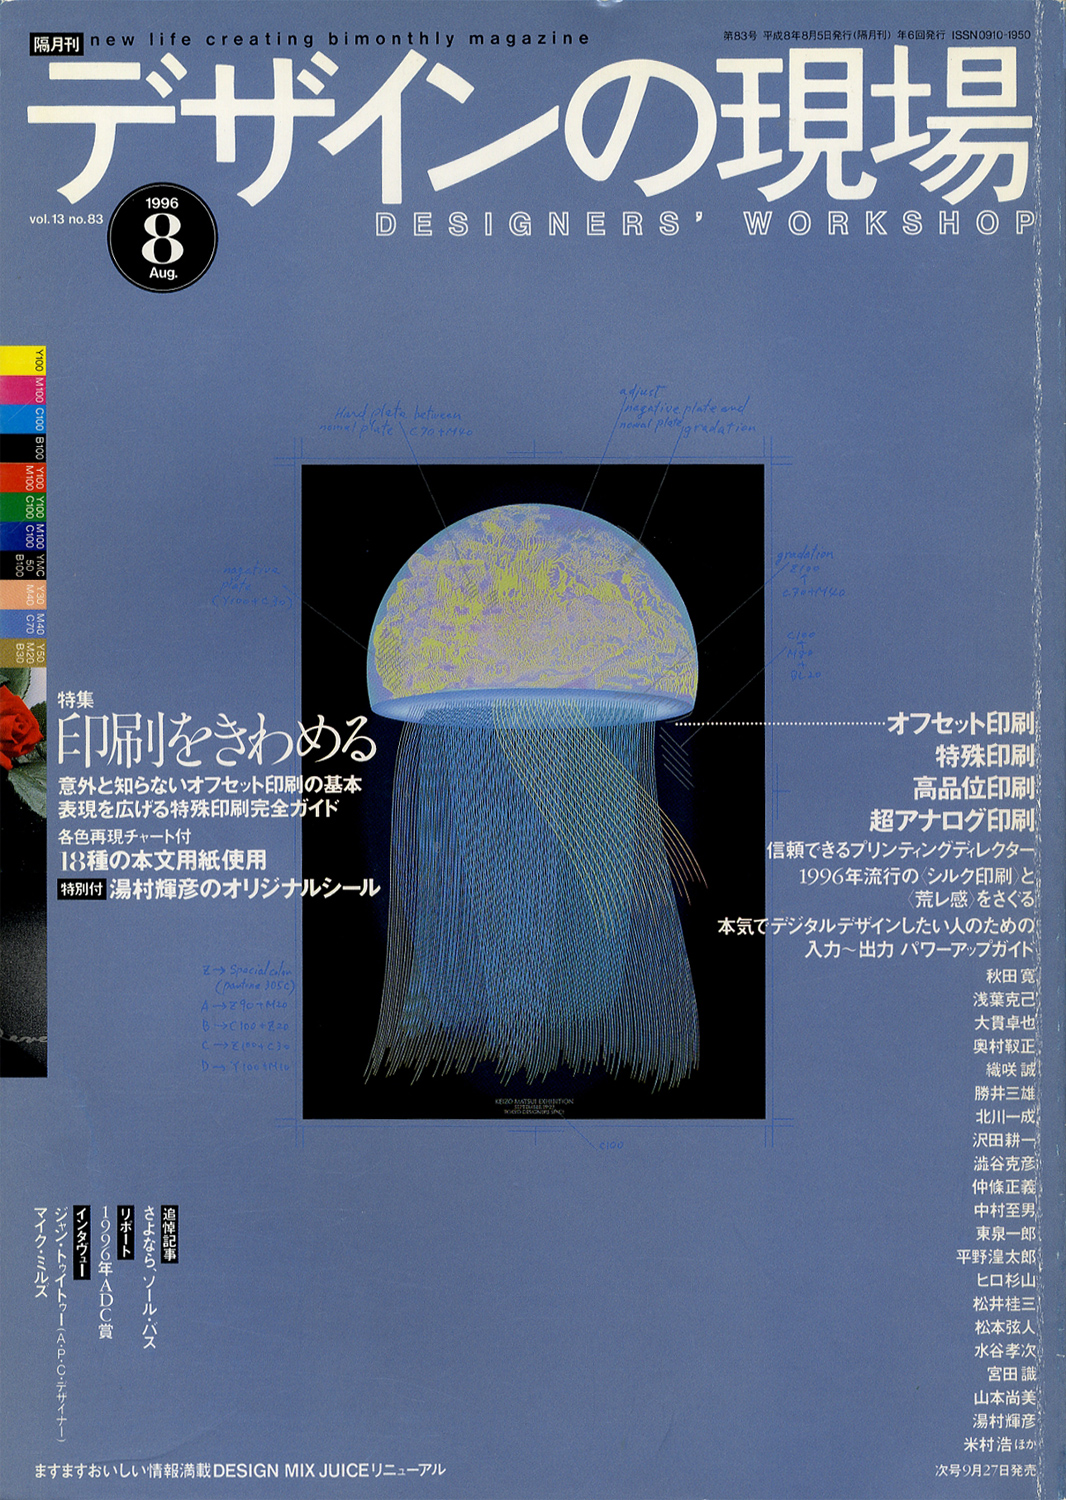 デザインの現場 DESIGNERS' WORKSHOP VOL.13 NO.83